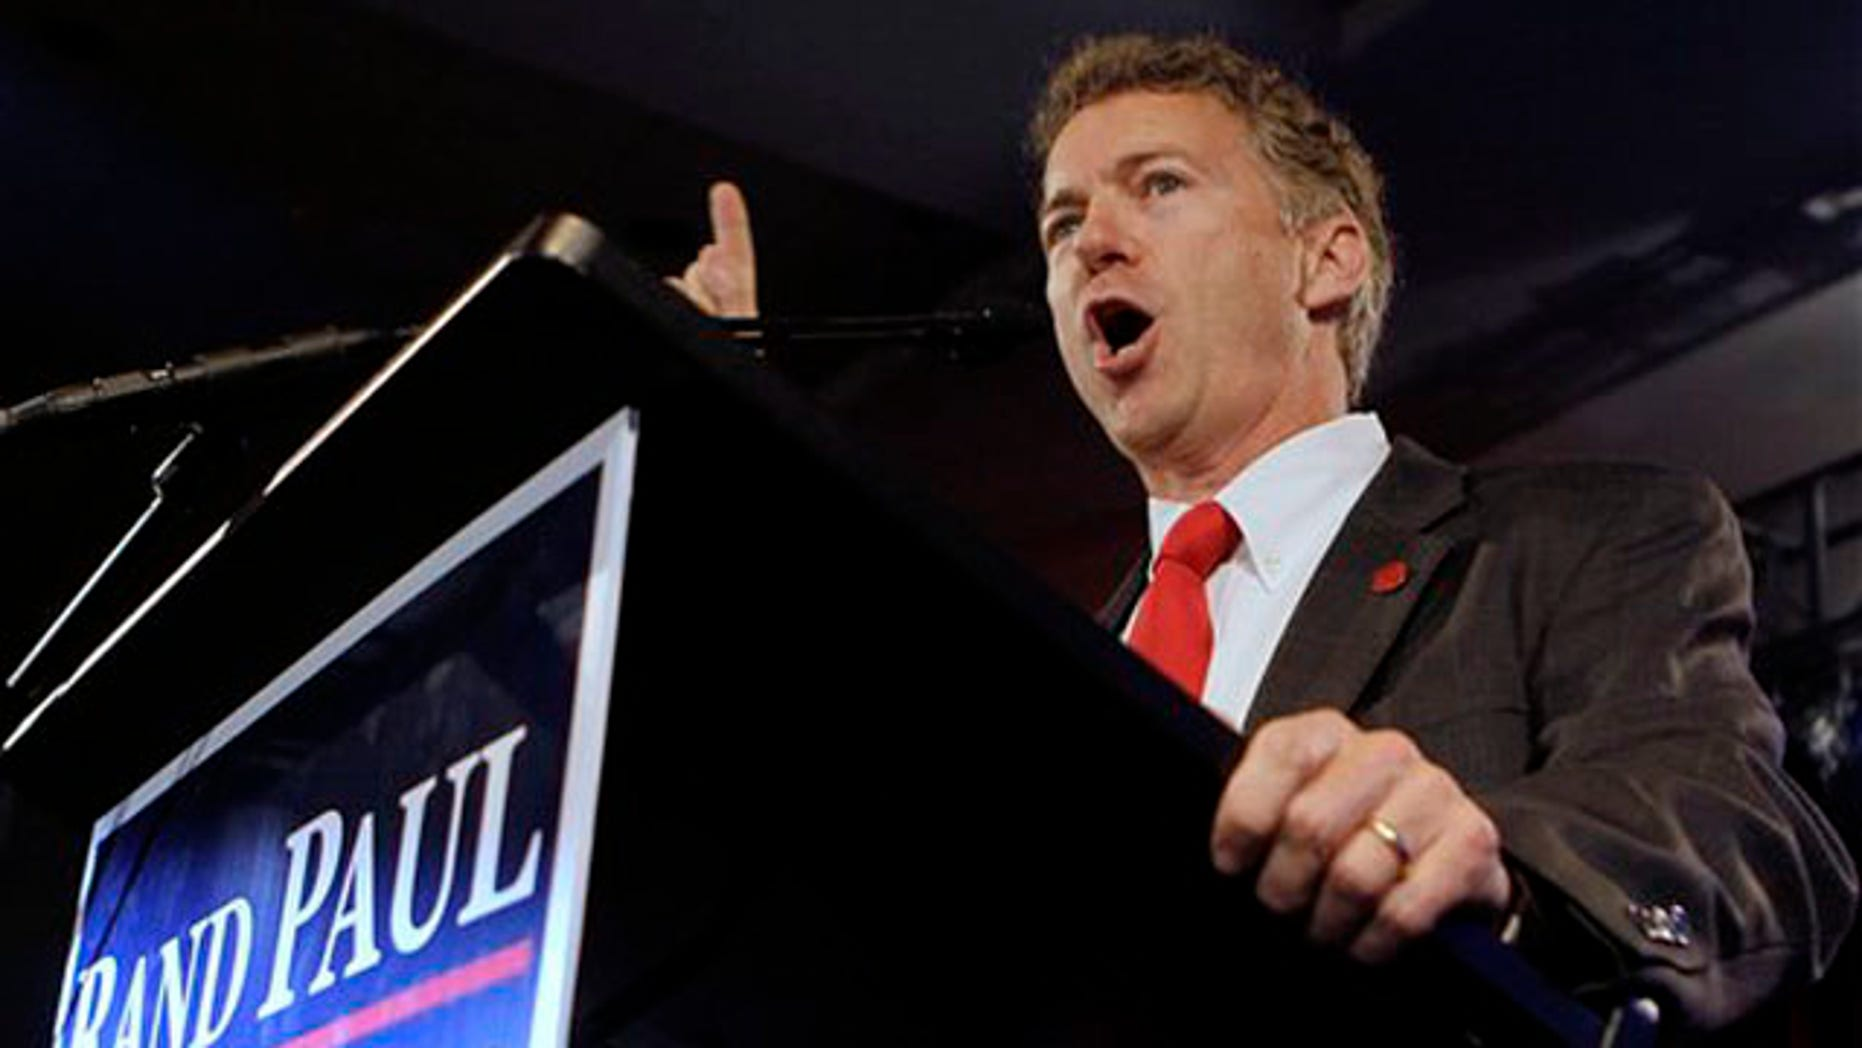 Republican Senate candidate Rand Paul speaks at his victory party in Bowling Green, Ky., Nov. 2. (AP Photo)